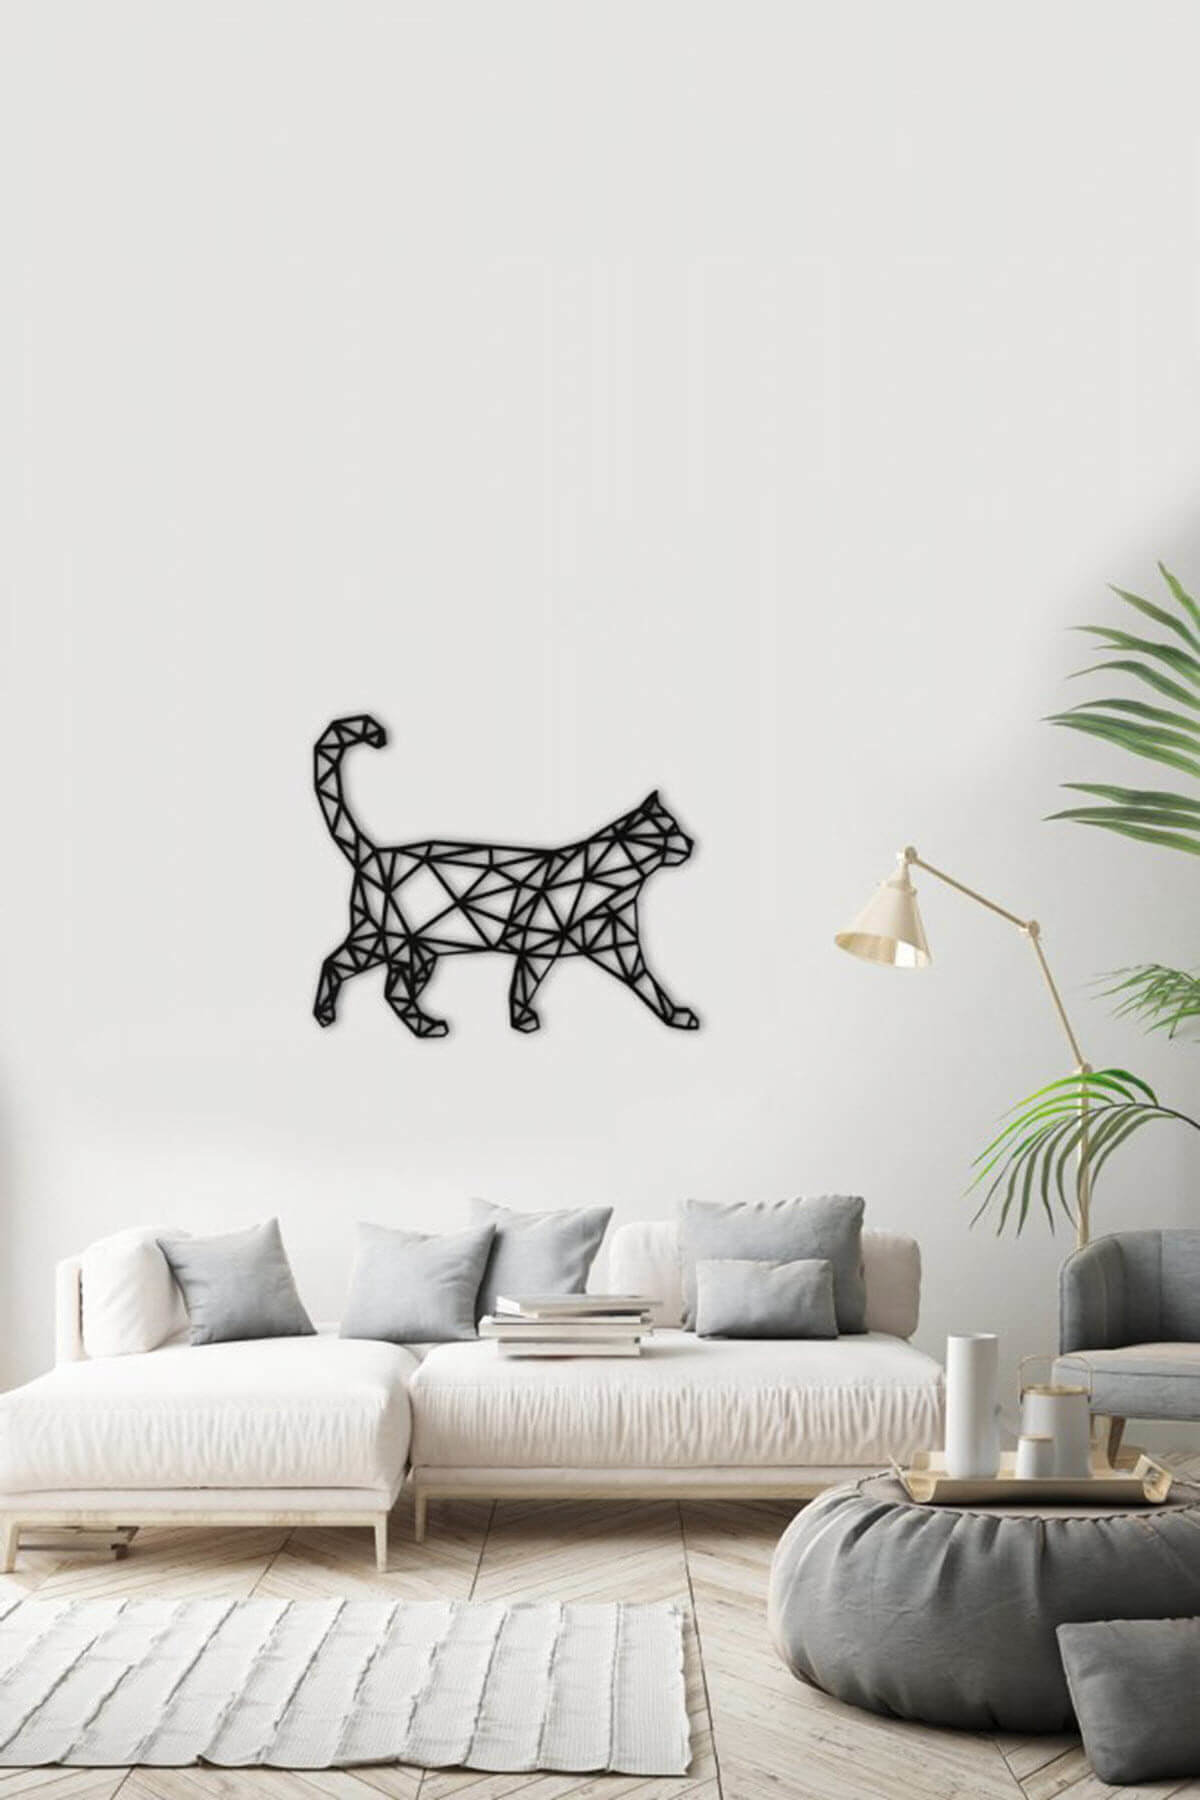 Laser Cut Polygonal Cat Wall Decal DXF File